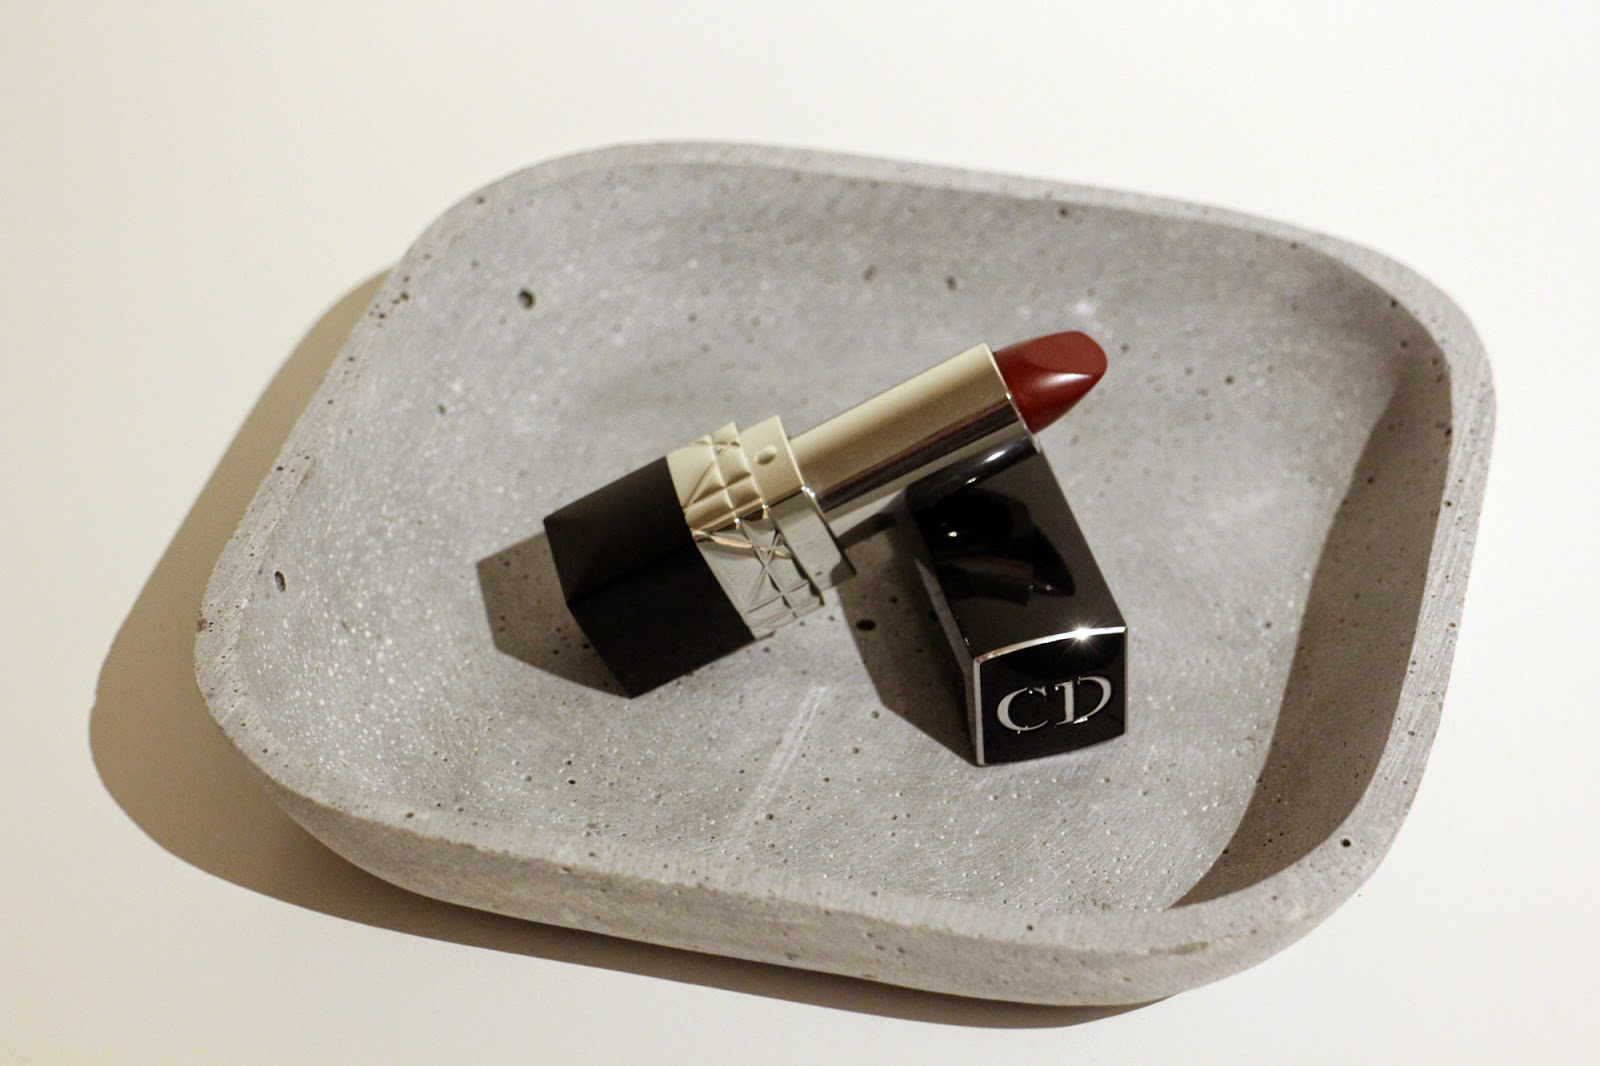 Christian Dior dark red lipstick